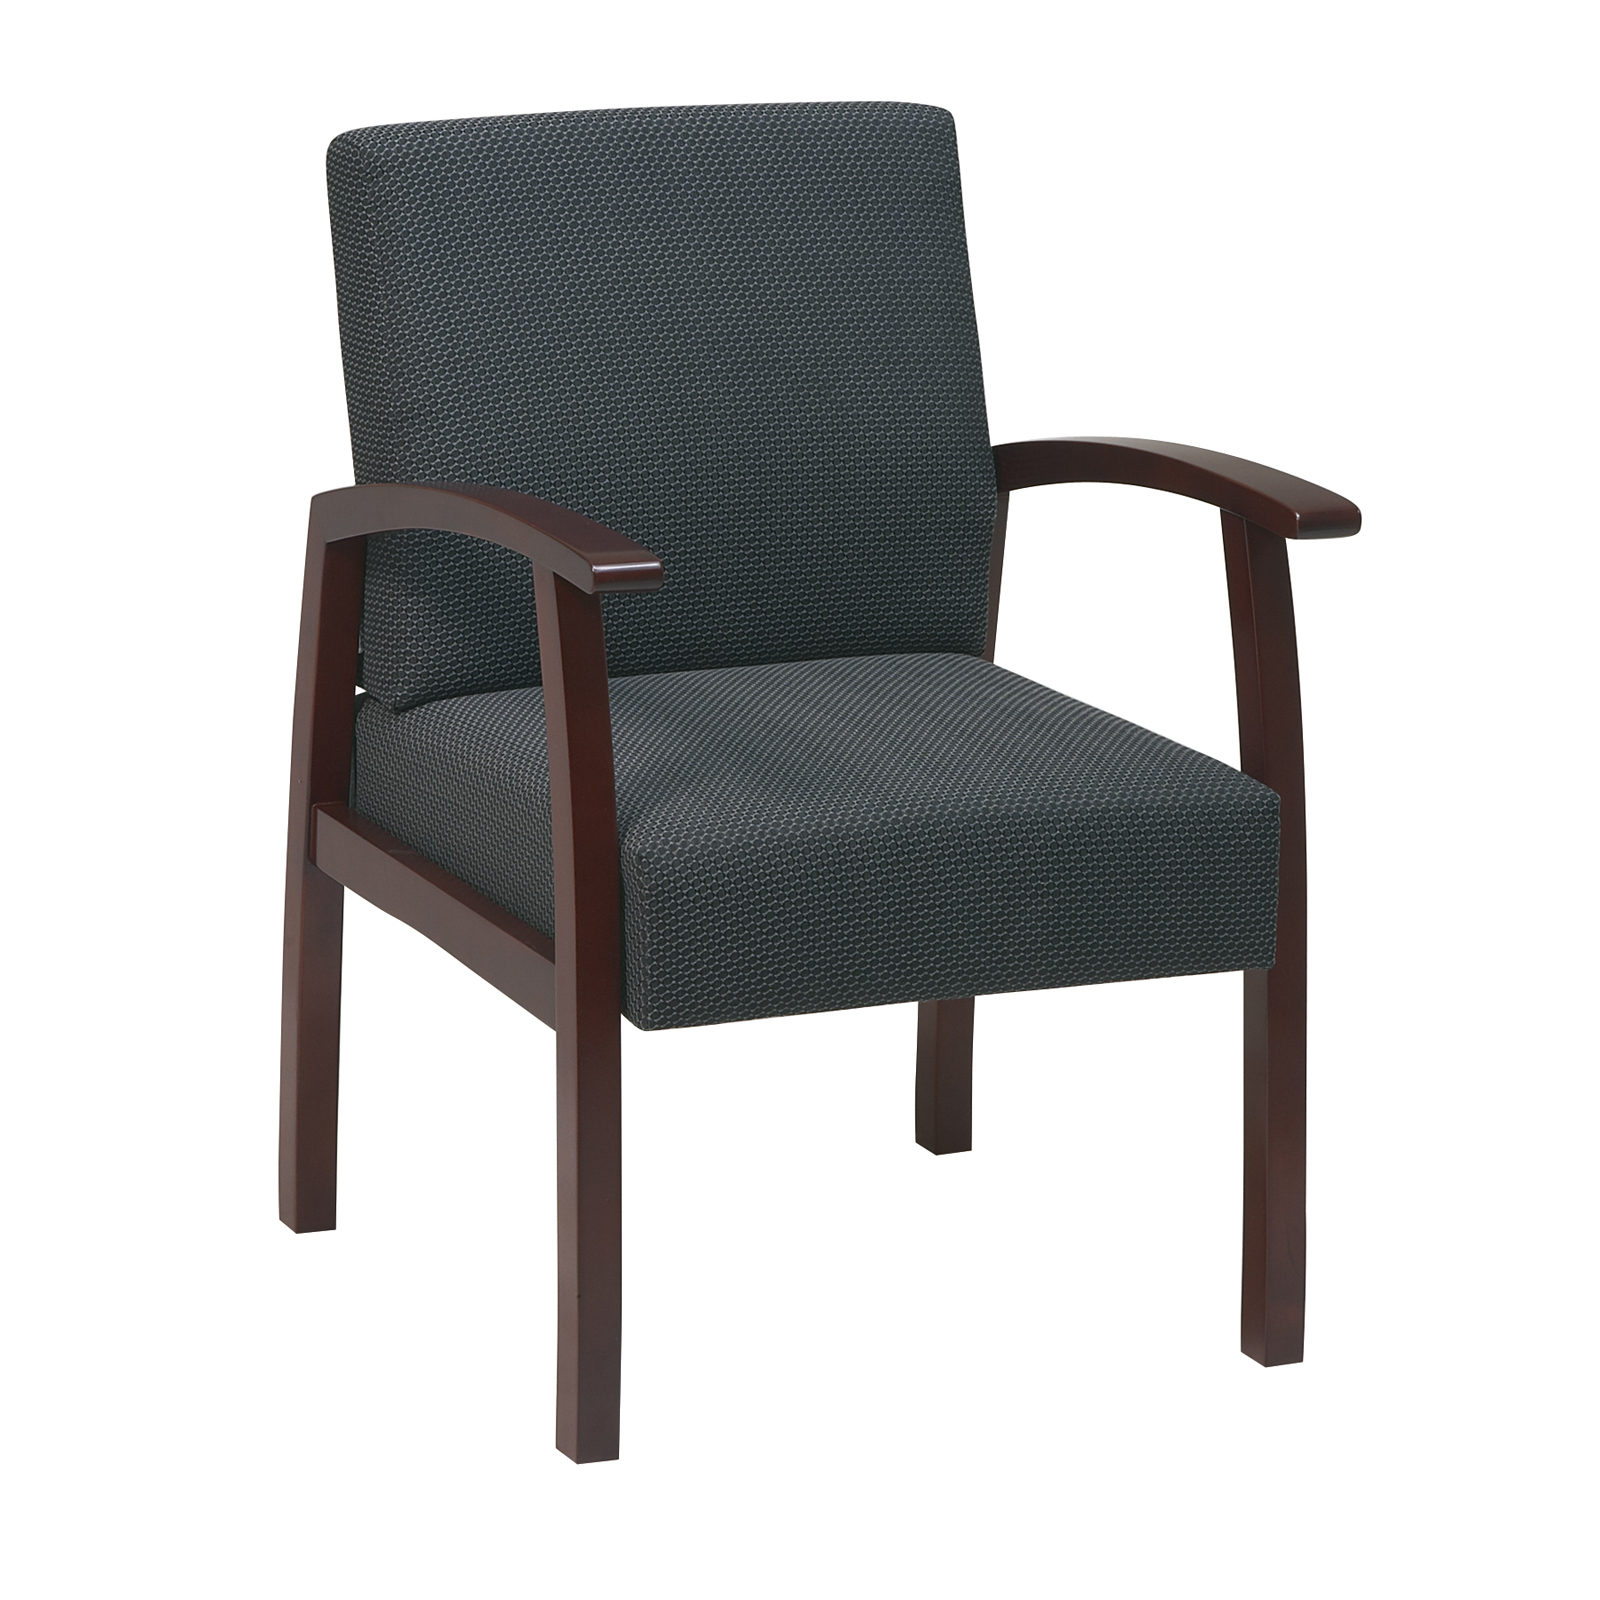 Deluxe Cherry Finish Guest Chair by Office Star in Waiting